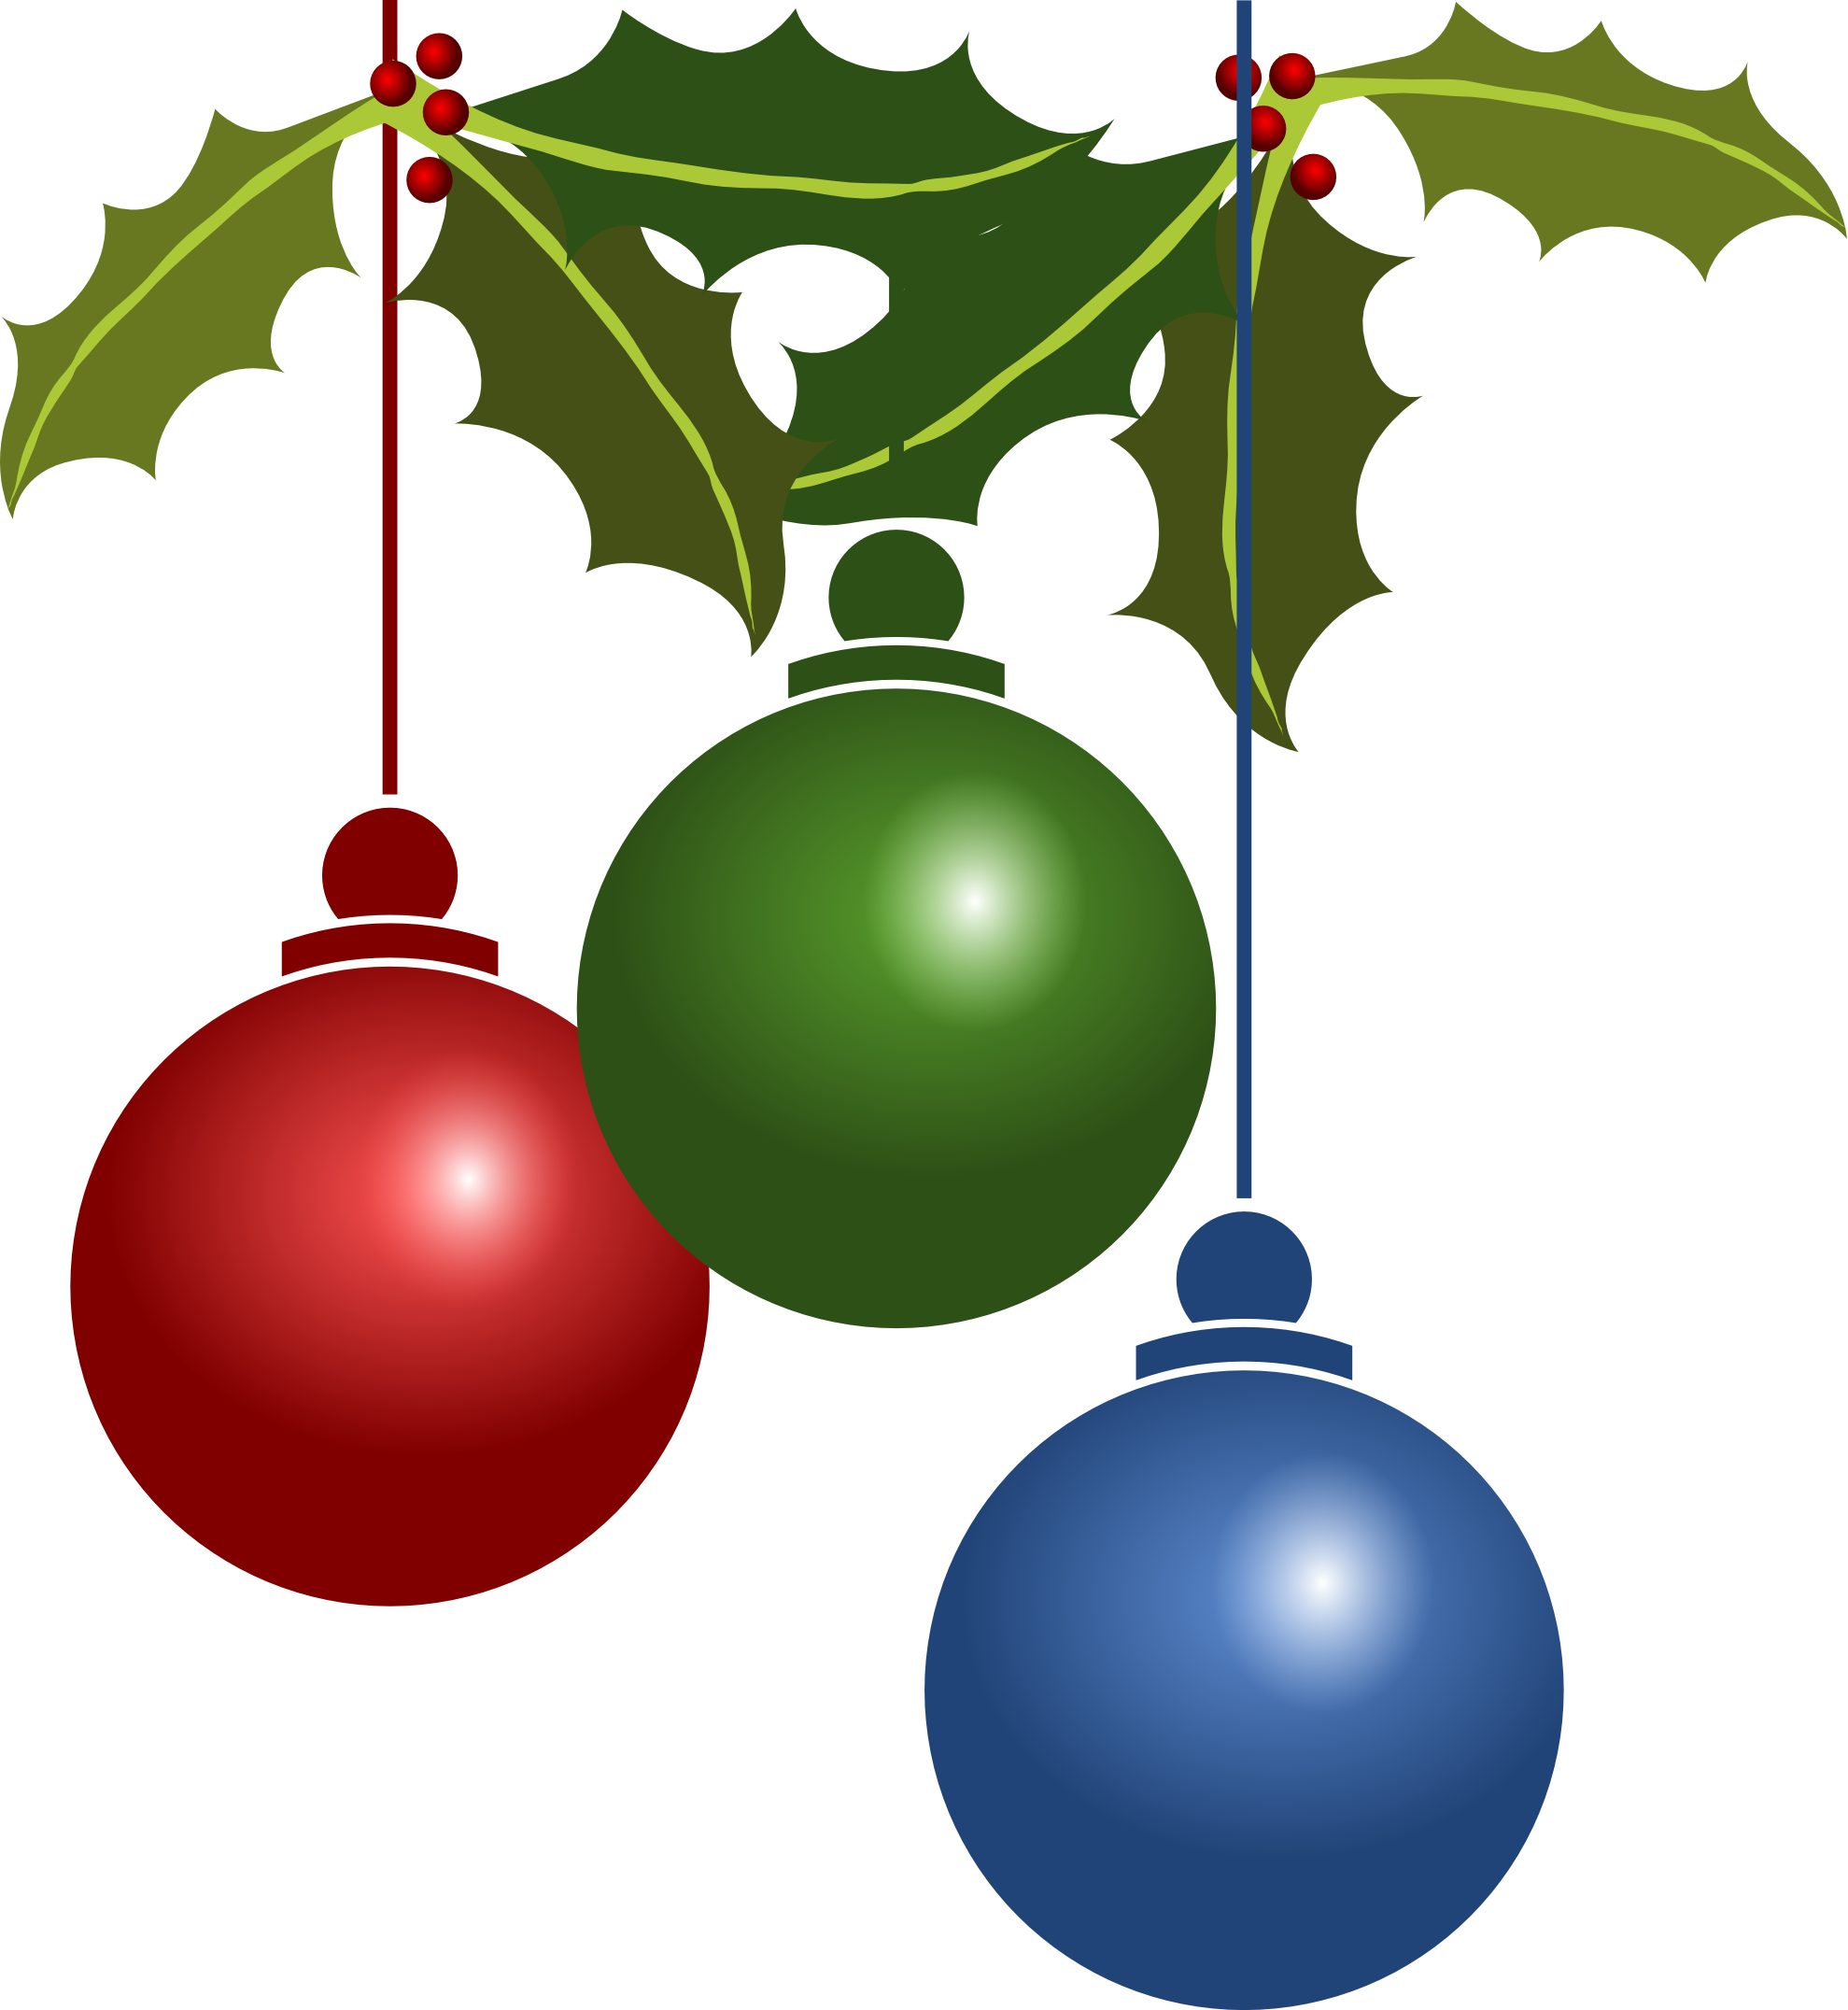 Holiday Clip Art Free .-Holiday Clip Art Free .-2